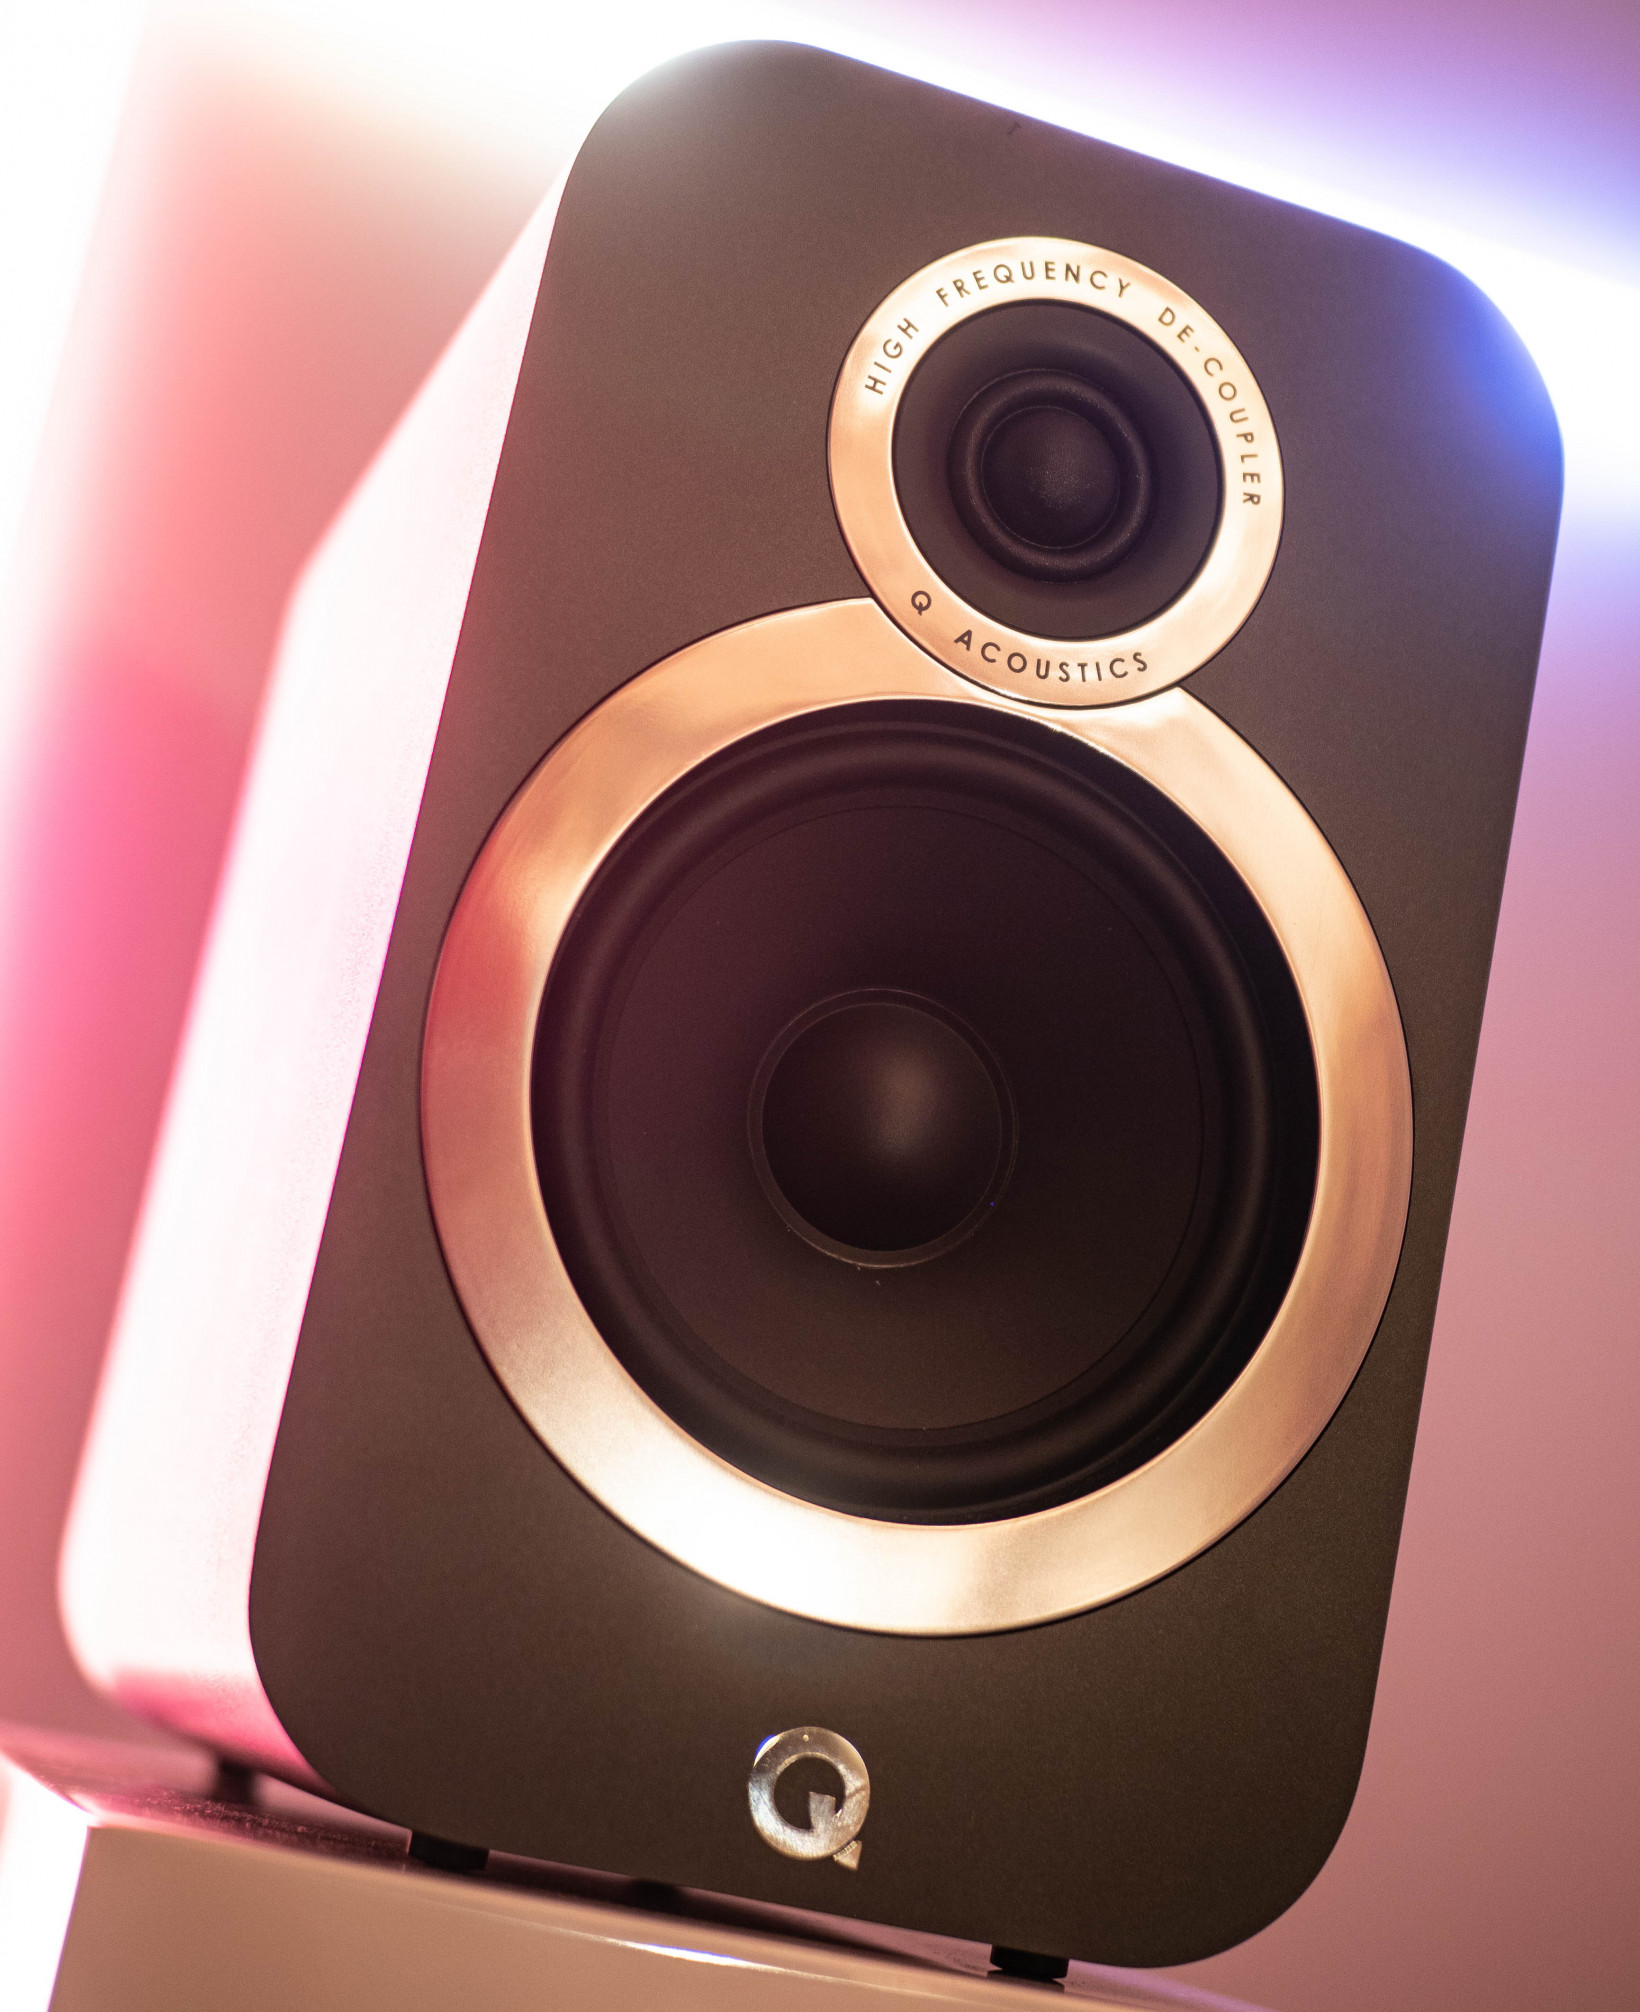 Q Acoustics 3020i Review: $300 speakers shouldn't sound this